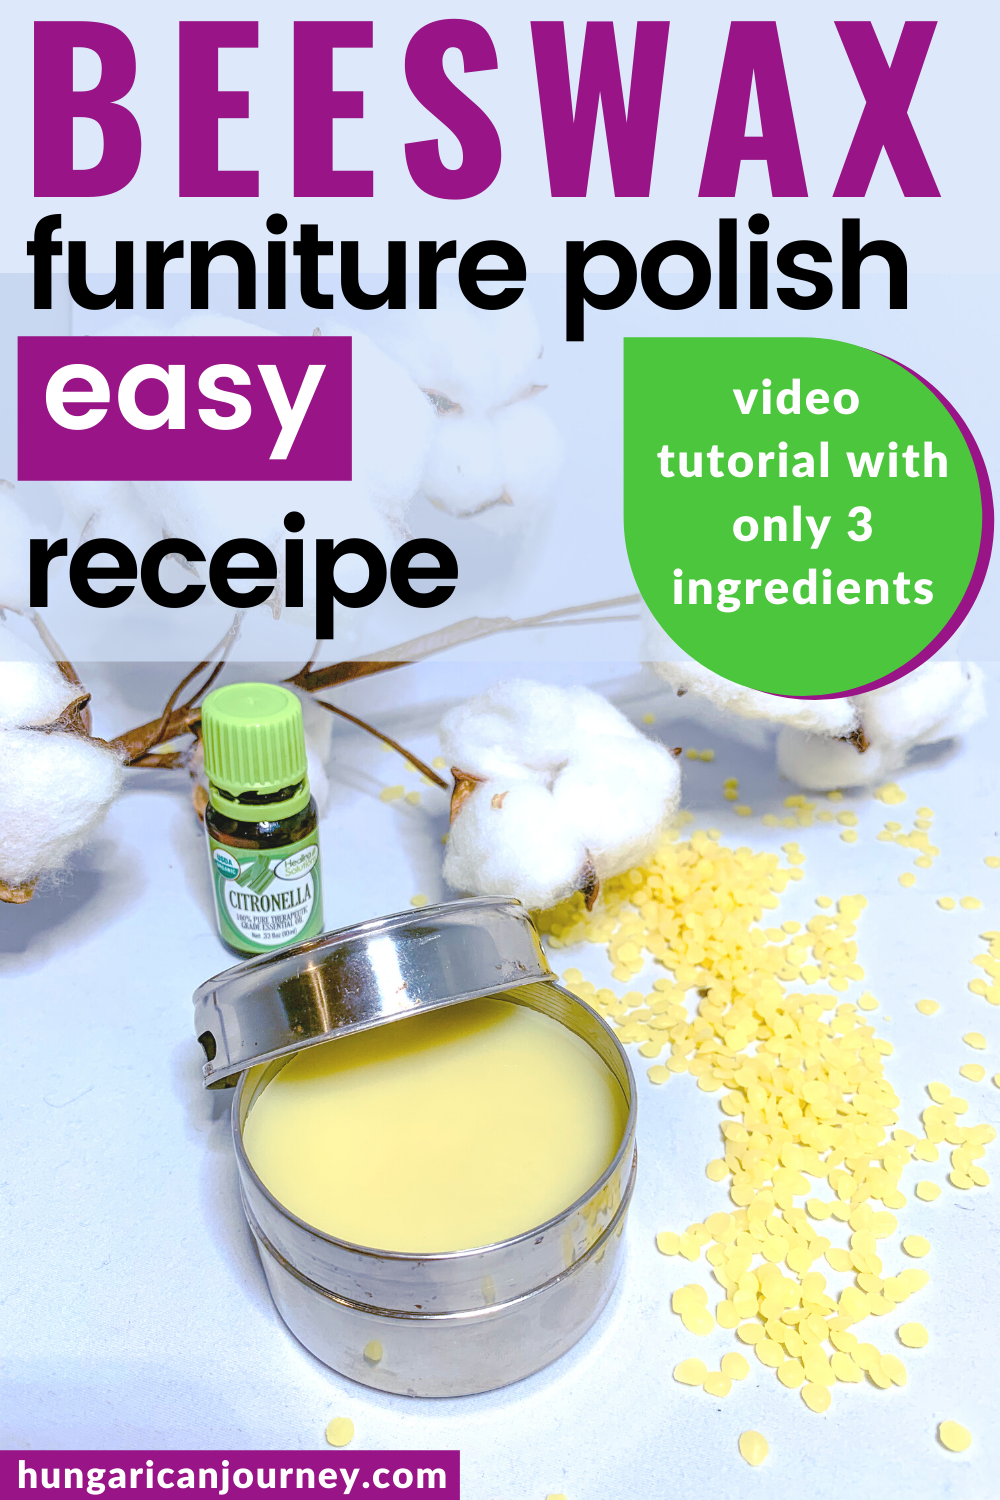 How to make natural beeswax furniture polish Learn to